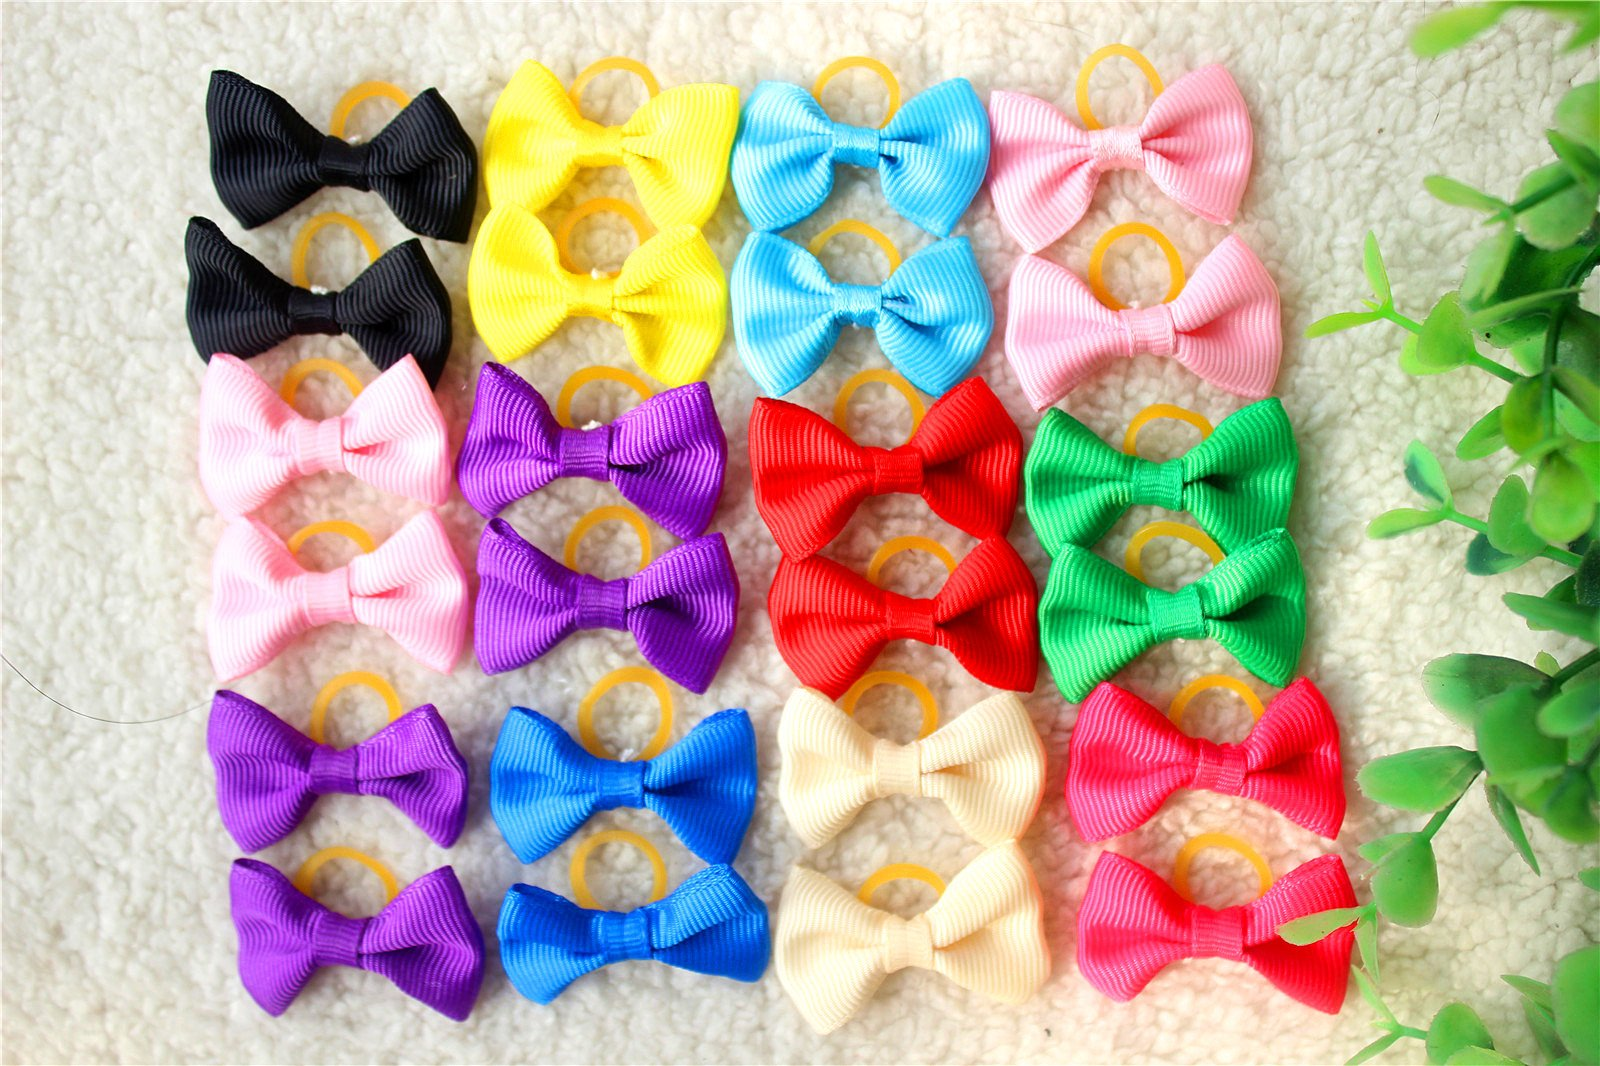 Yagopet 60pcs/30pairs Popular Dog Hair Bows Mixed Solid Colors Topknot with Rubber Bands Durable Small Bowknot Pet Grooming Products Dog Hair Accessories